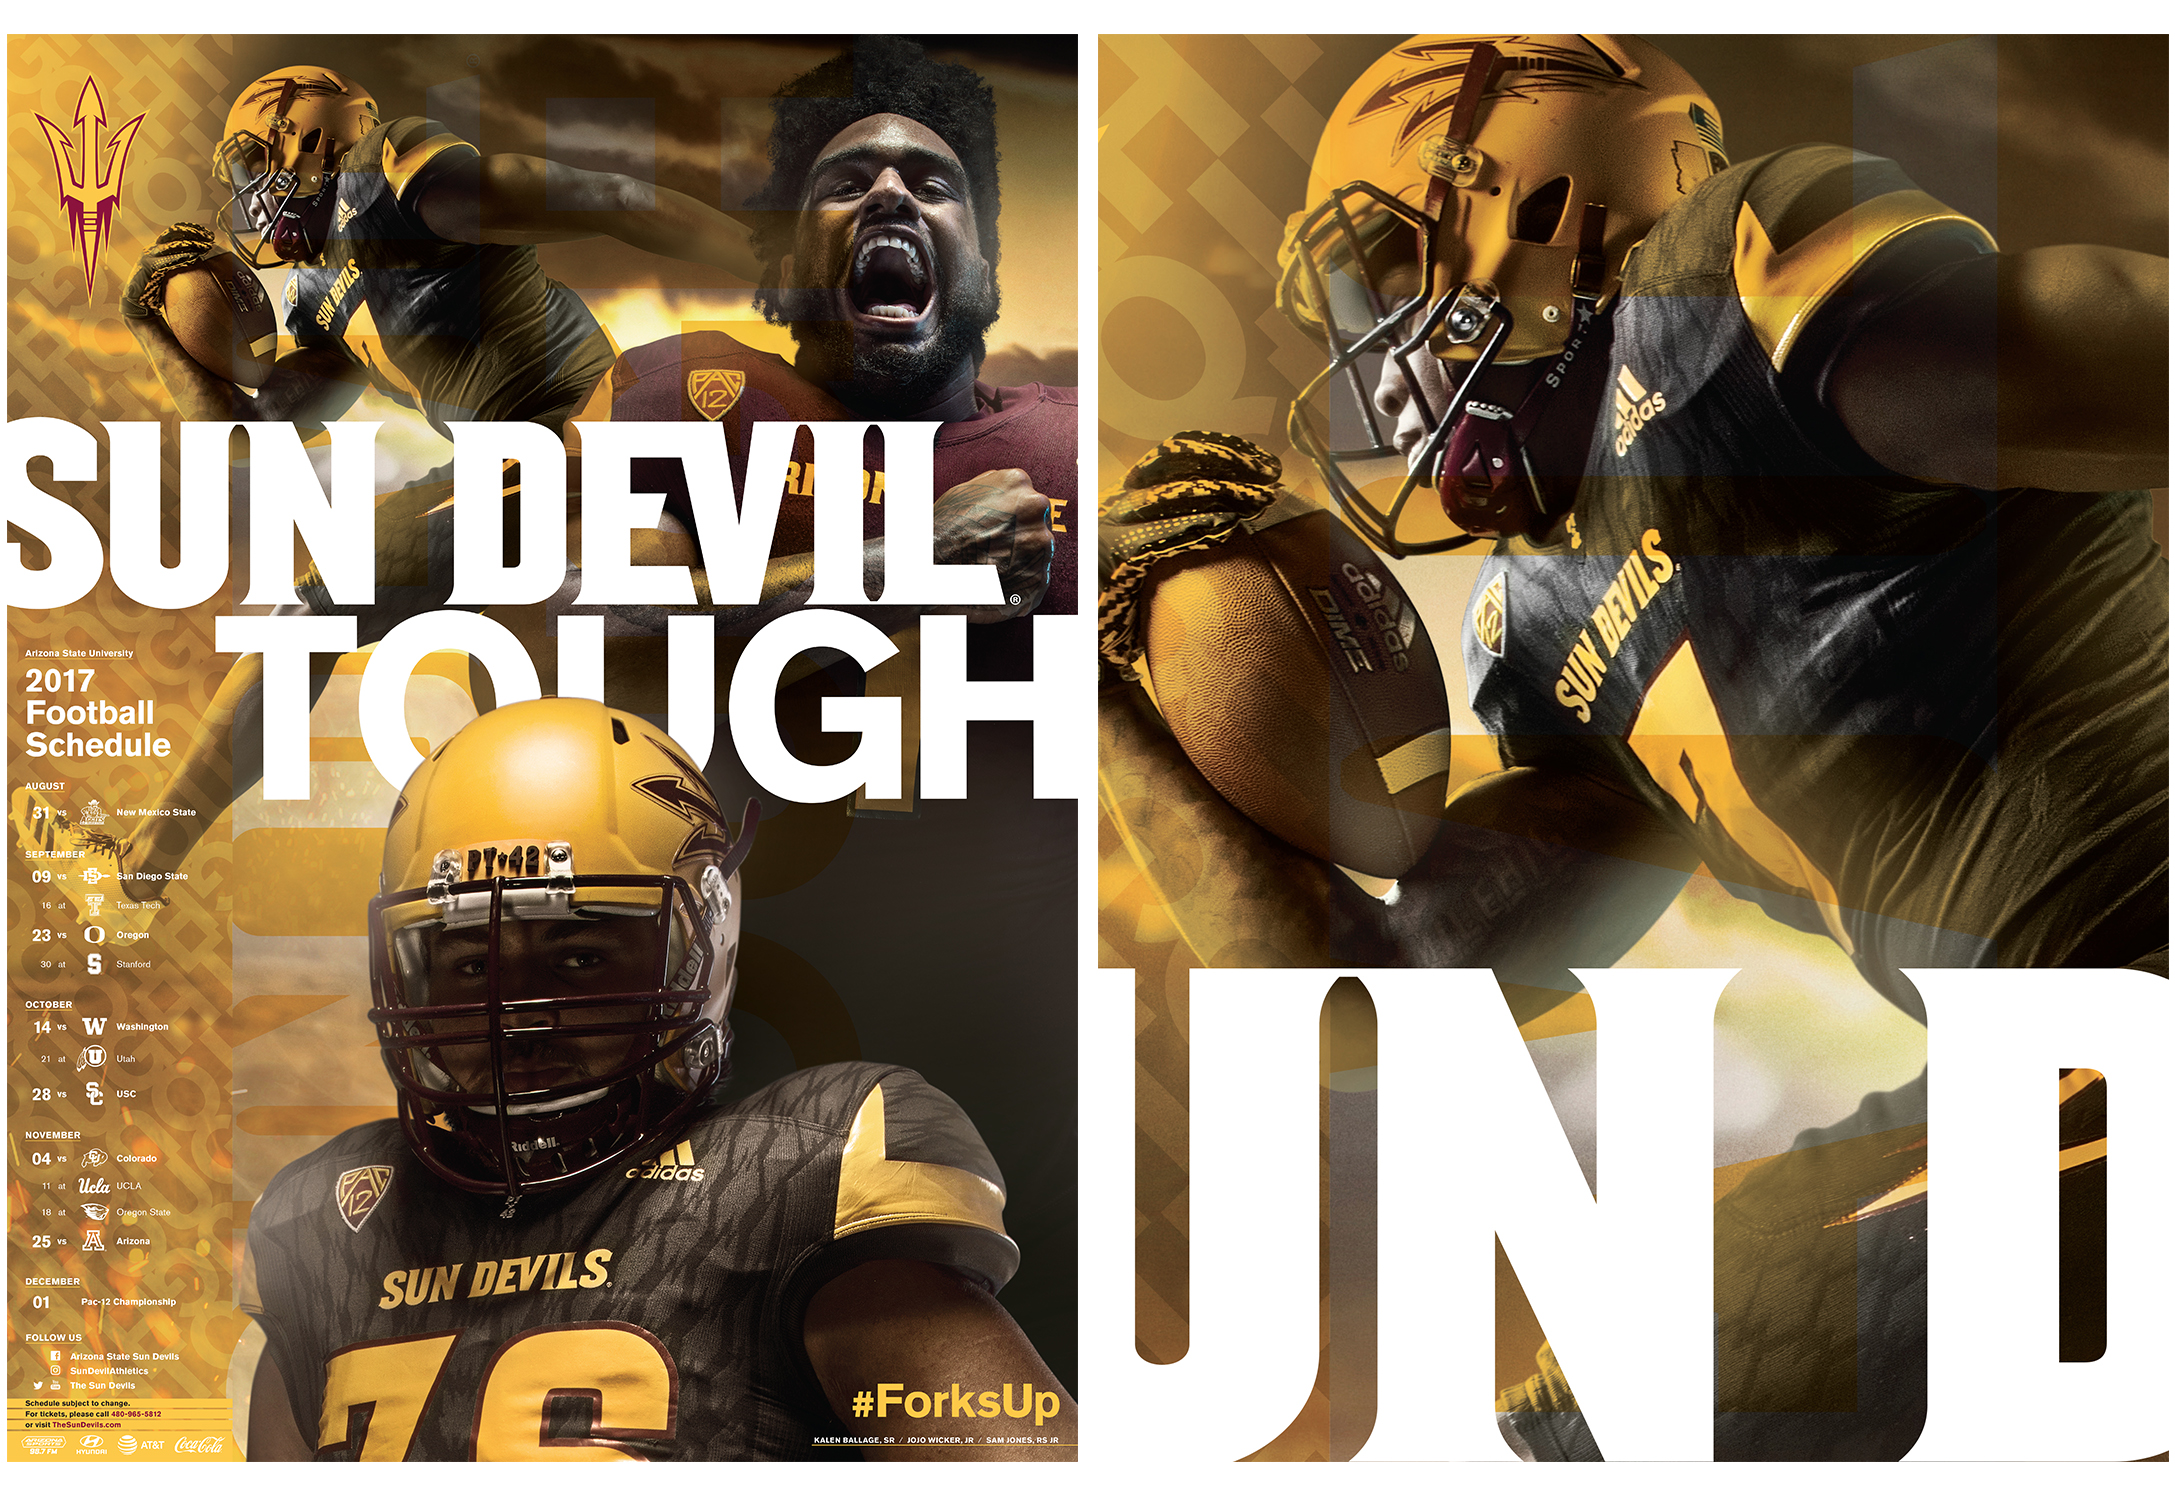 "ASU Athletics Fall 2017  Football Ad Campaign   The creative materials seek to portray  the strength of character, talent, knowledge,  skills, optimism and inventiveness to conquer  all challenges on and off the field. During  the game, and in life, Sun Devils find new  ways to win, gain the edge and create a  brighter future. A sense of reinvention,  powered by a diverse team of elite talent  strengthened by ""Sun Devil Nation,"" is also  woven into the collateral messaging.  Conceptualization, design + production. Adobe InDesign, Photoshop + Illustrator  Addy Award · Silver   cr8@ sun devil athletics, arizona state university"